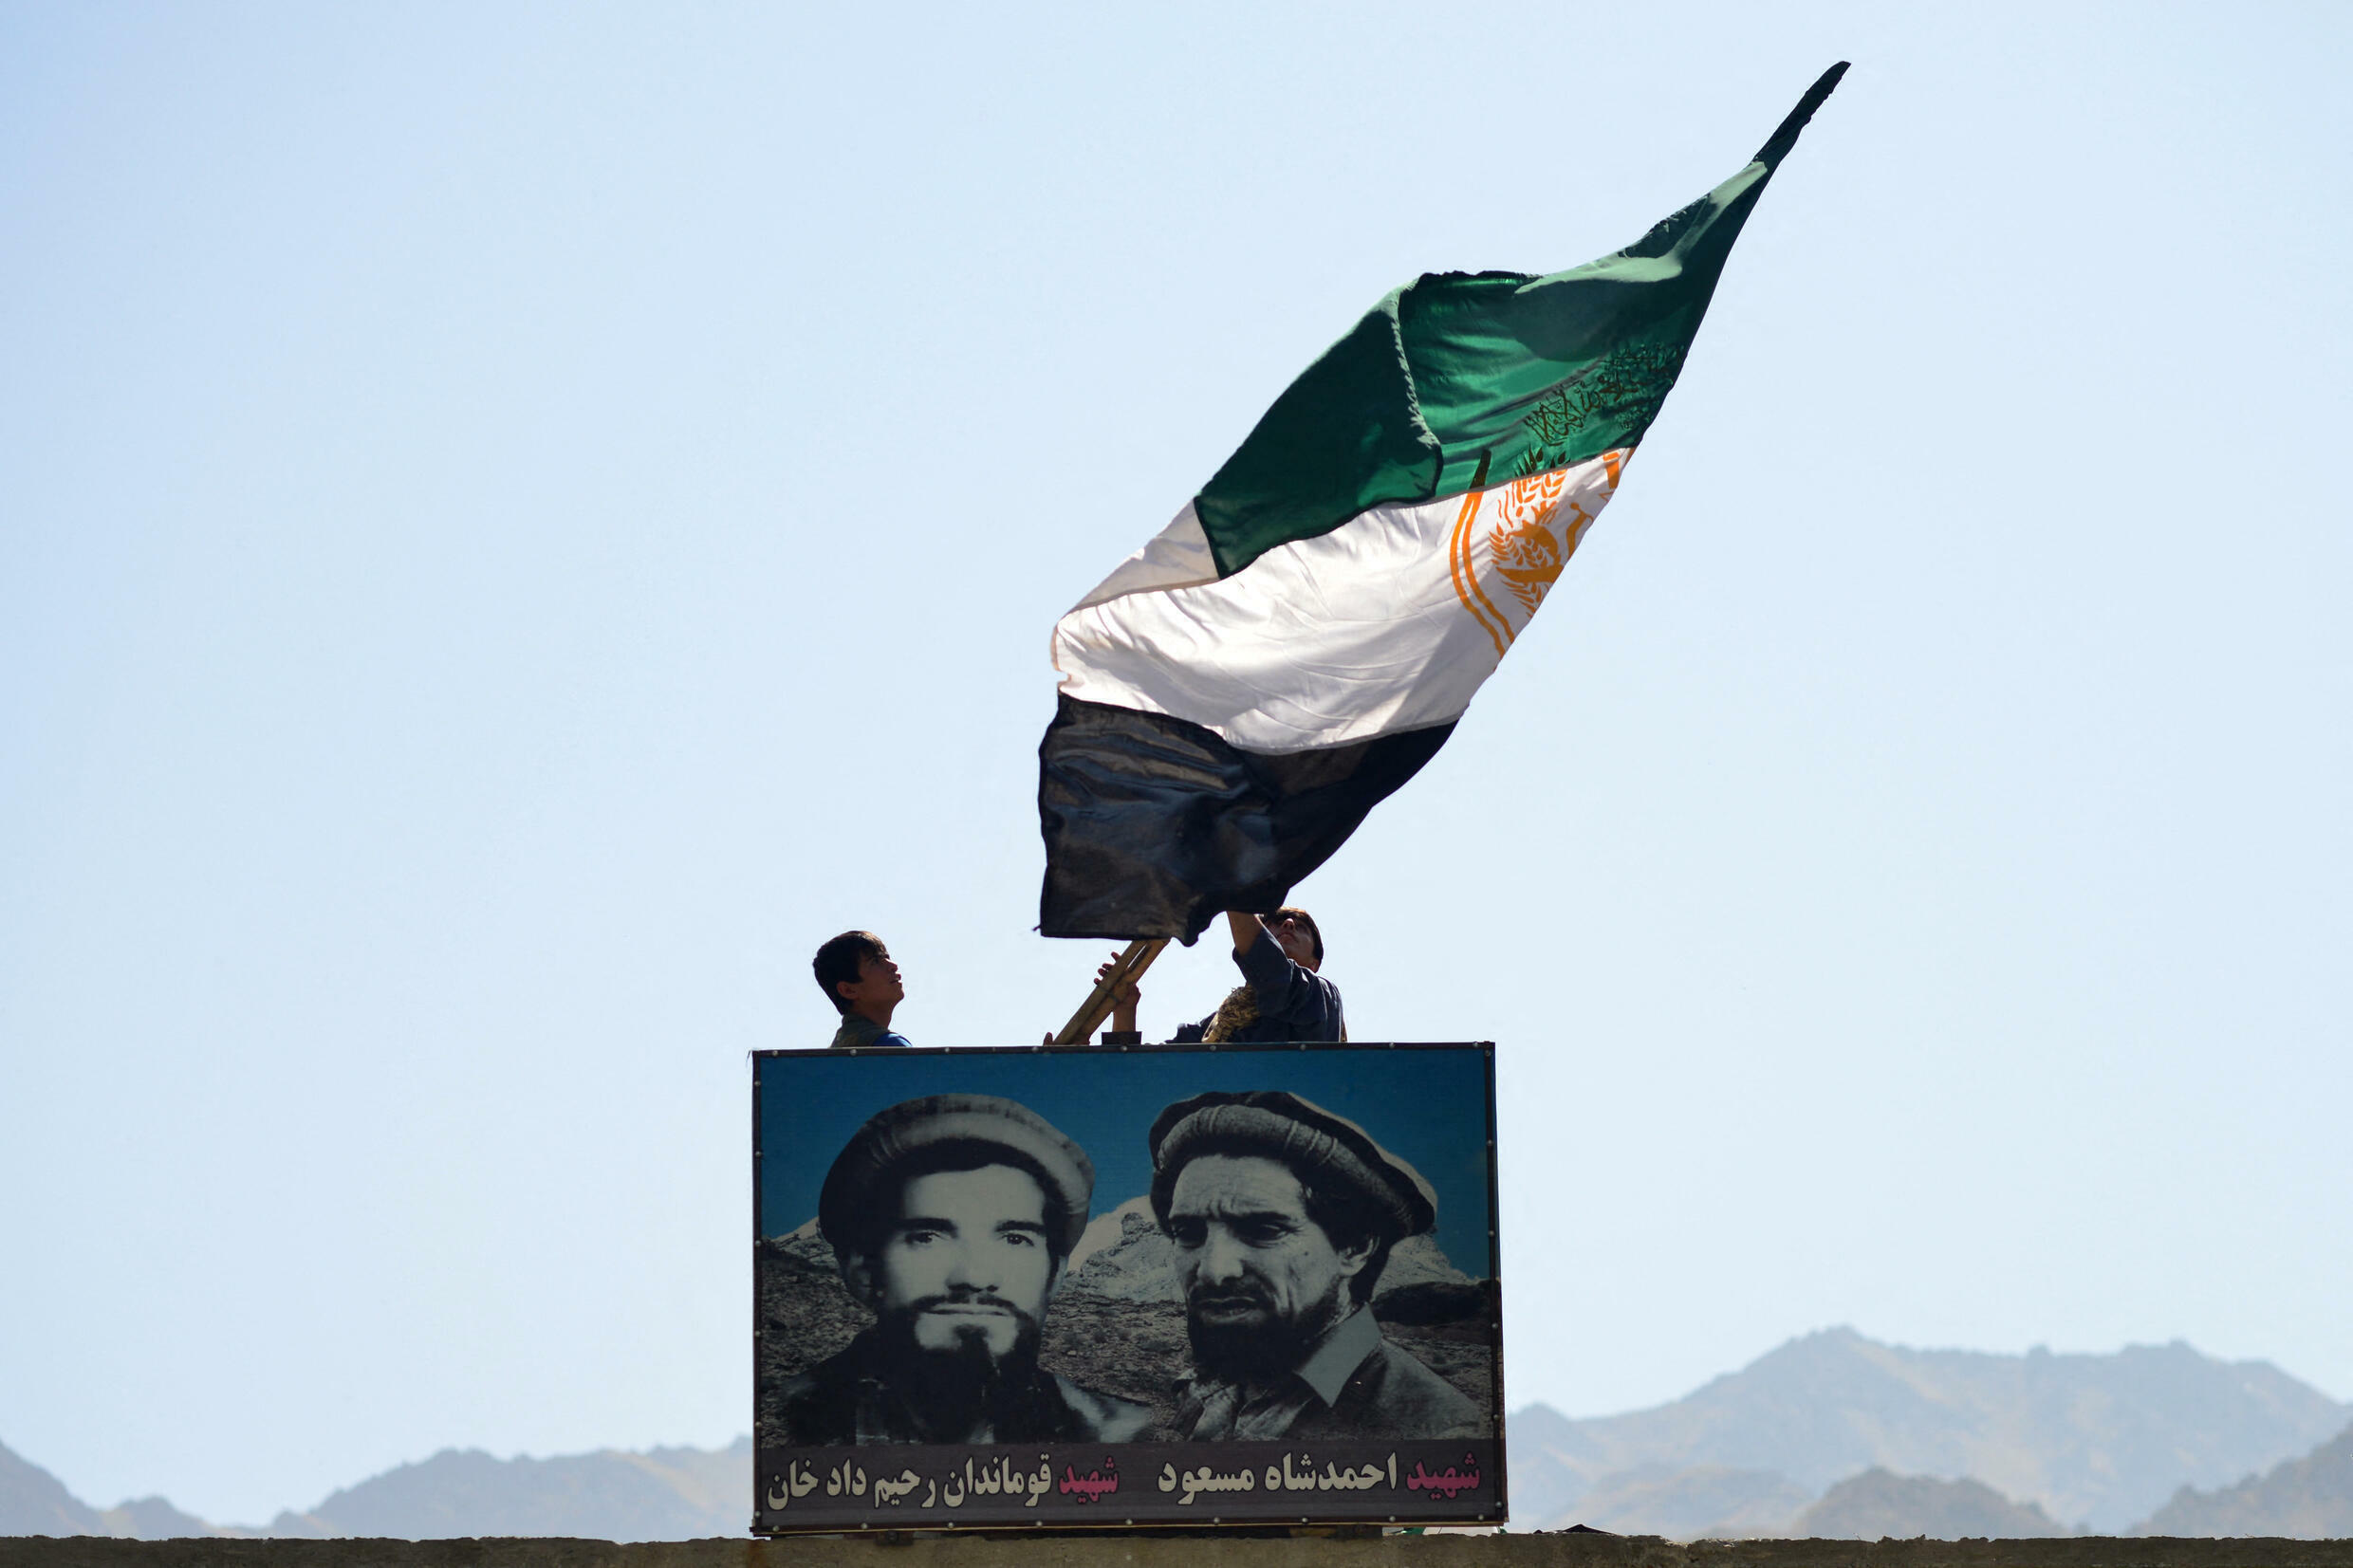 Afghan men wave a flag above the portrait of late Afghan commander Ahmad Shah Massoud (R) in Paryan district of Panjshir province on August 23, 2021, as the Taliban said their fighters had surrounded resistance forces holed up in the valley, but were looking to negotiate rather than take the fight to them.